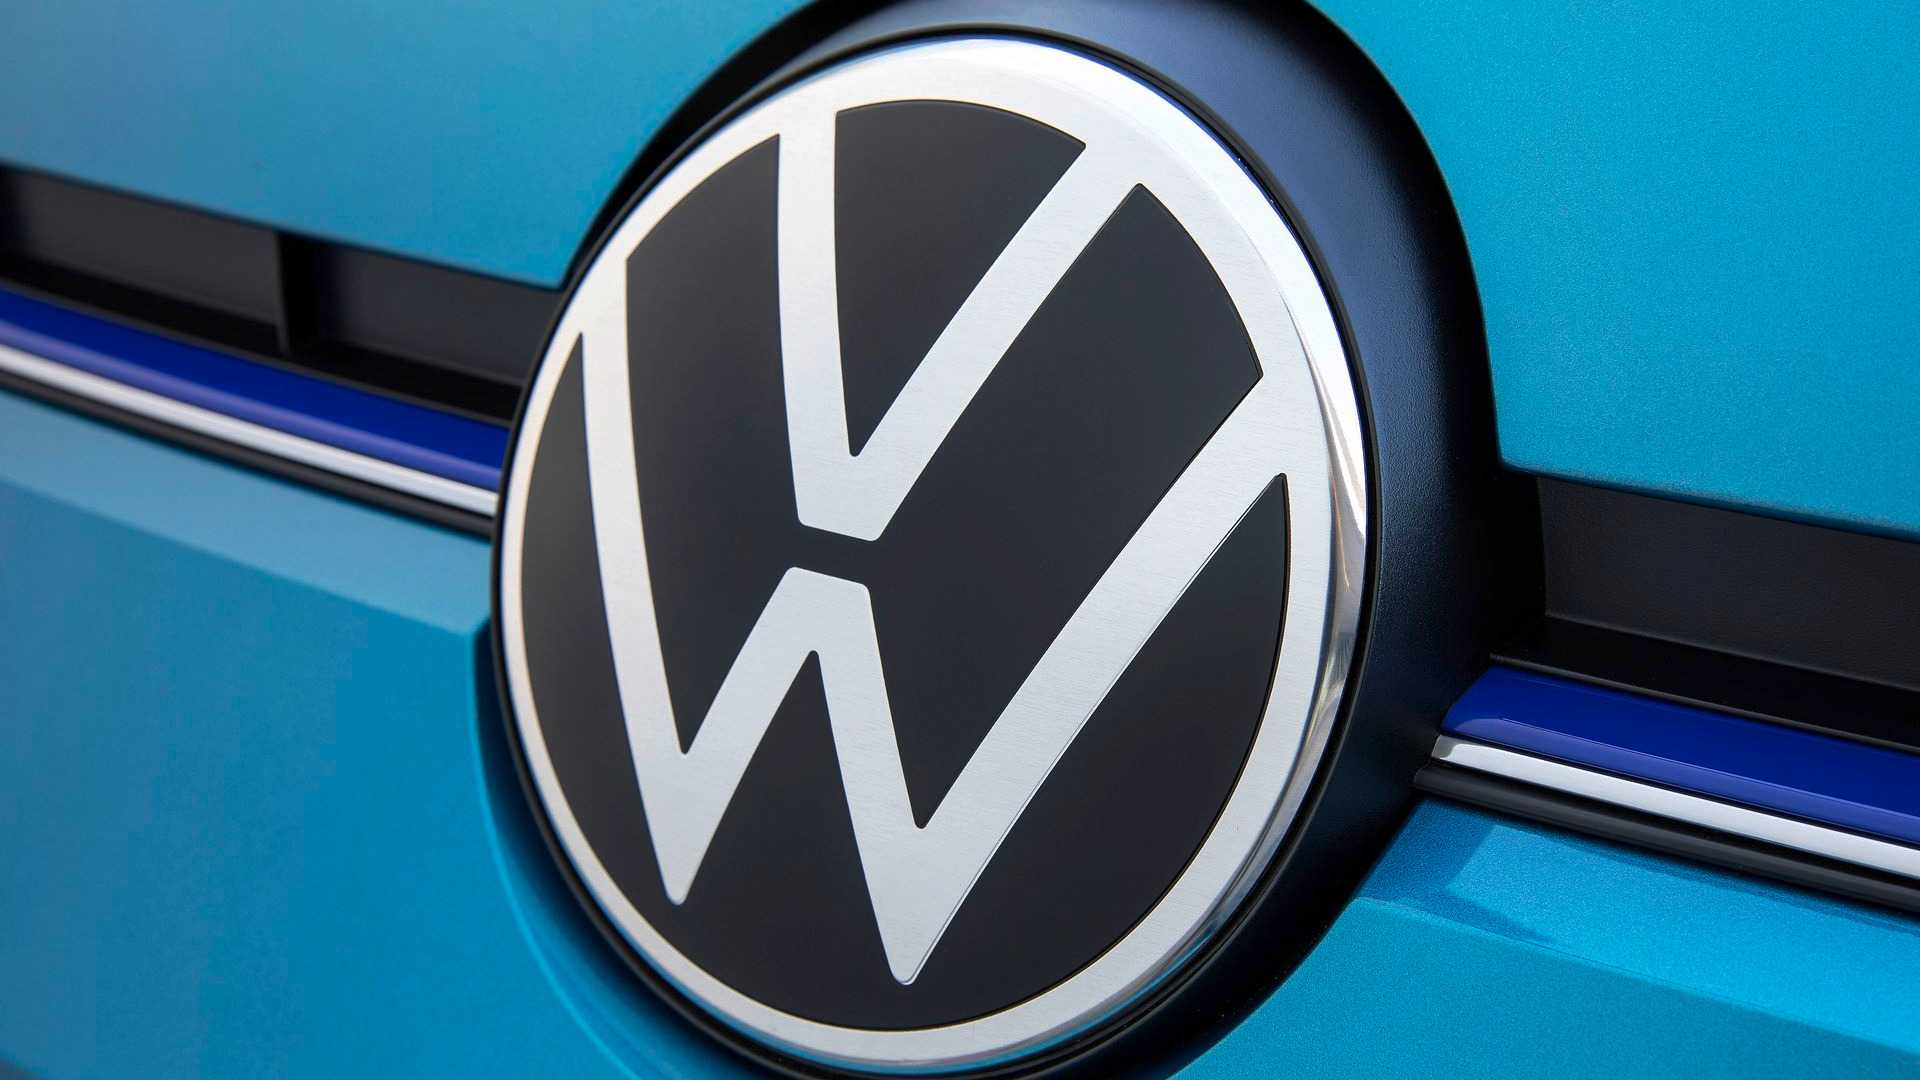 Rumor Mill: Volkswagen To Buy 20% Stake In Guoxuan Battery Maker